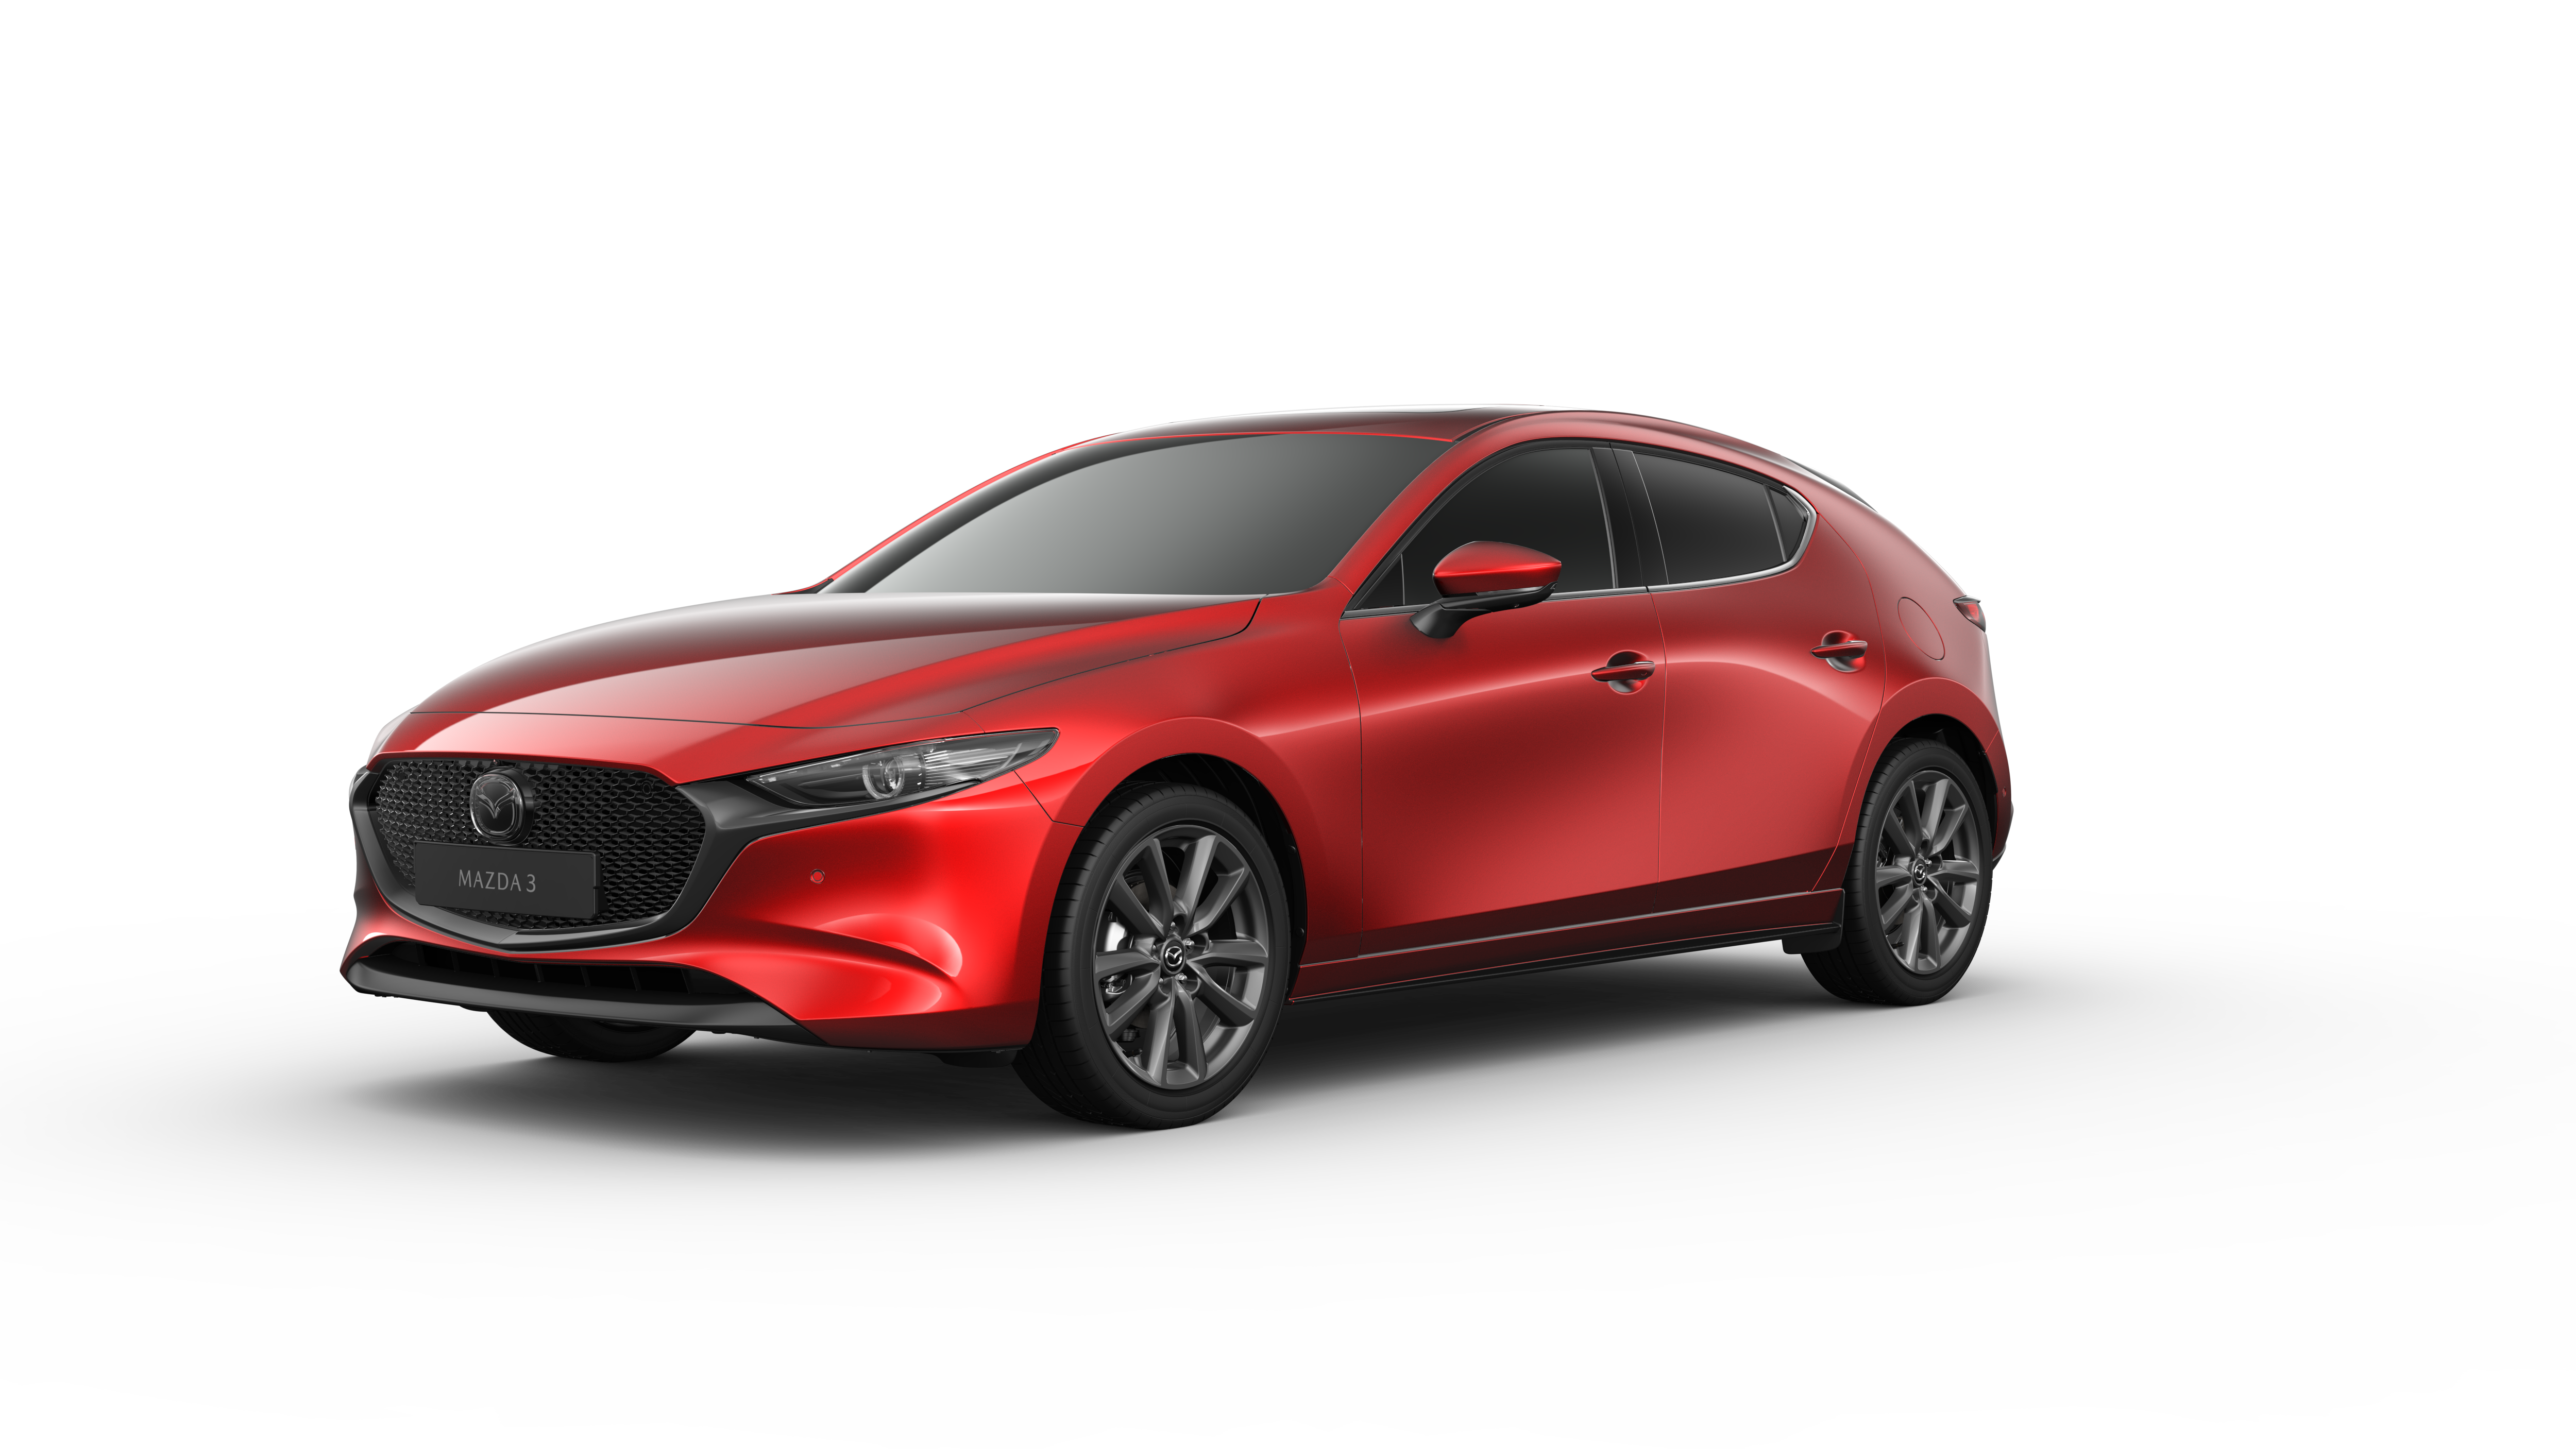 mazda3_bpl1_bcrtlae_46v_by7_ext_high_tra